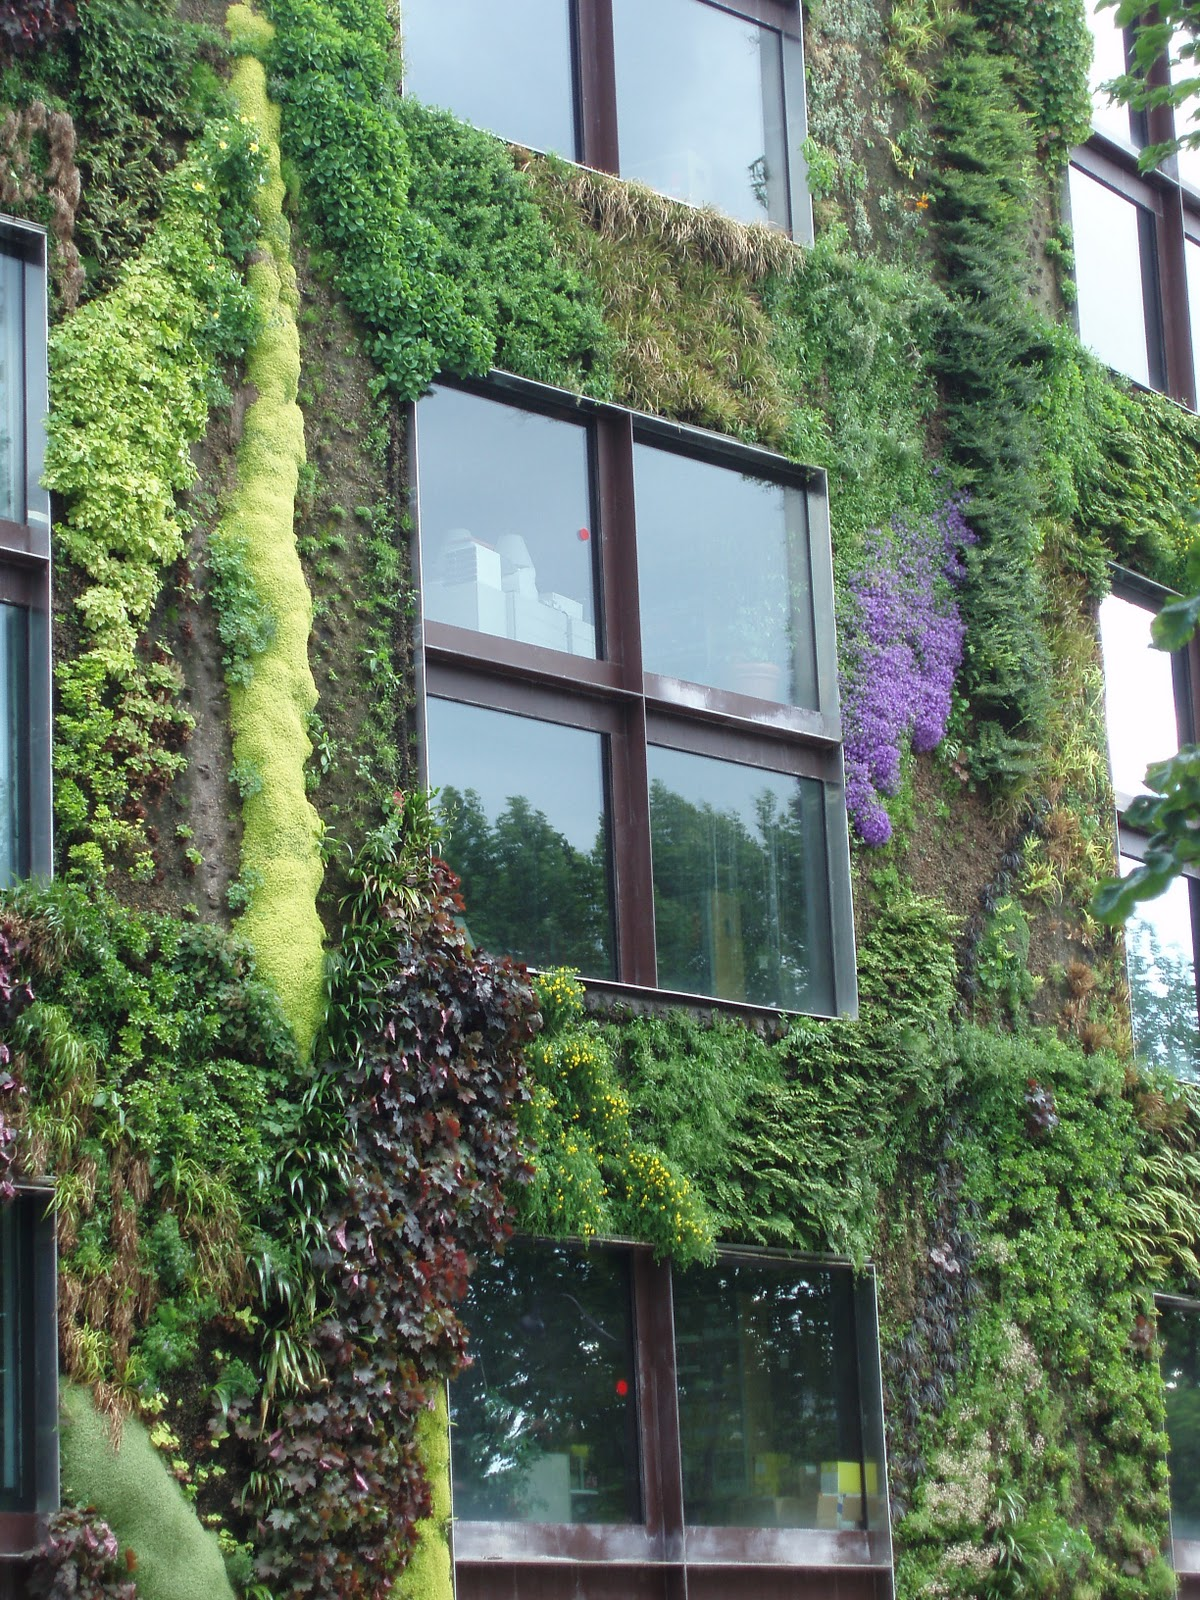 Uprooted Gardener How to Build Your Own Living Wall or Vertical